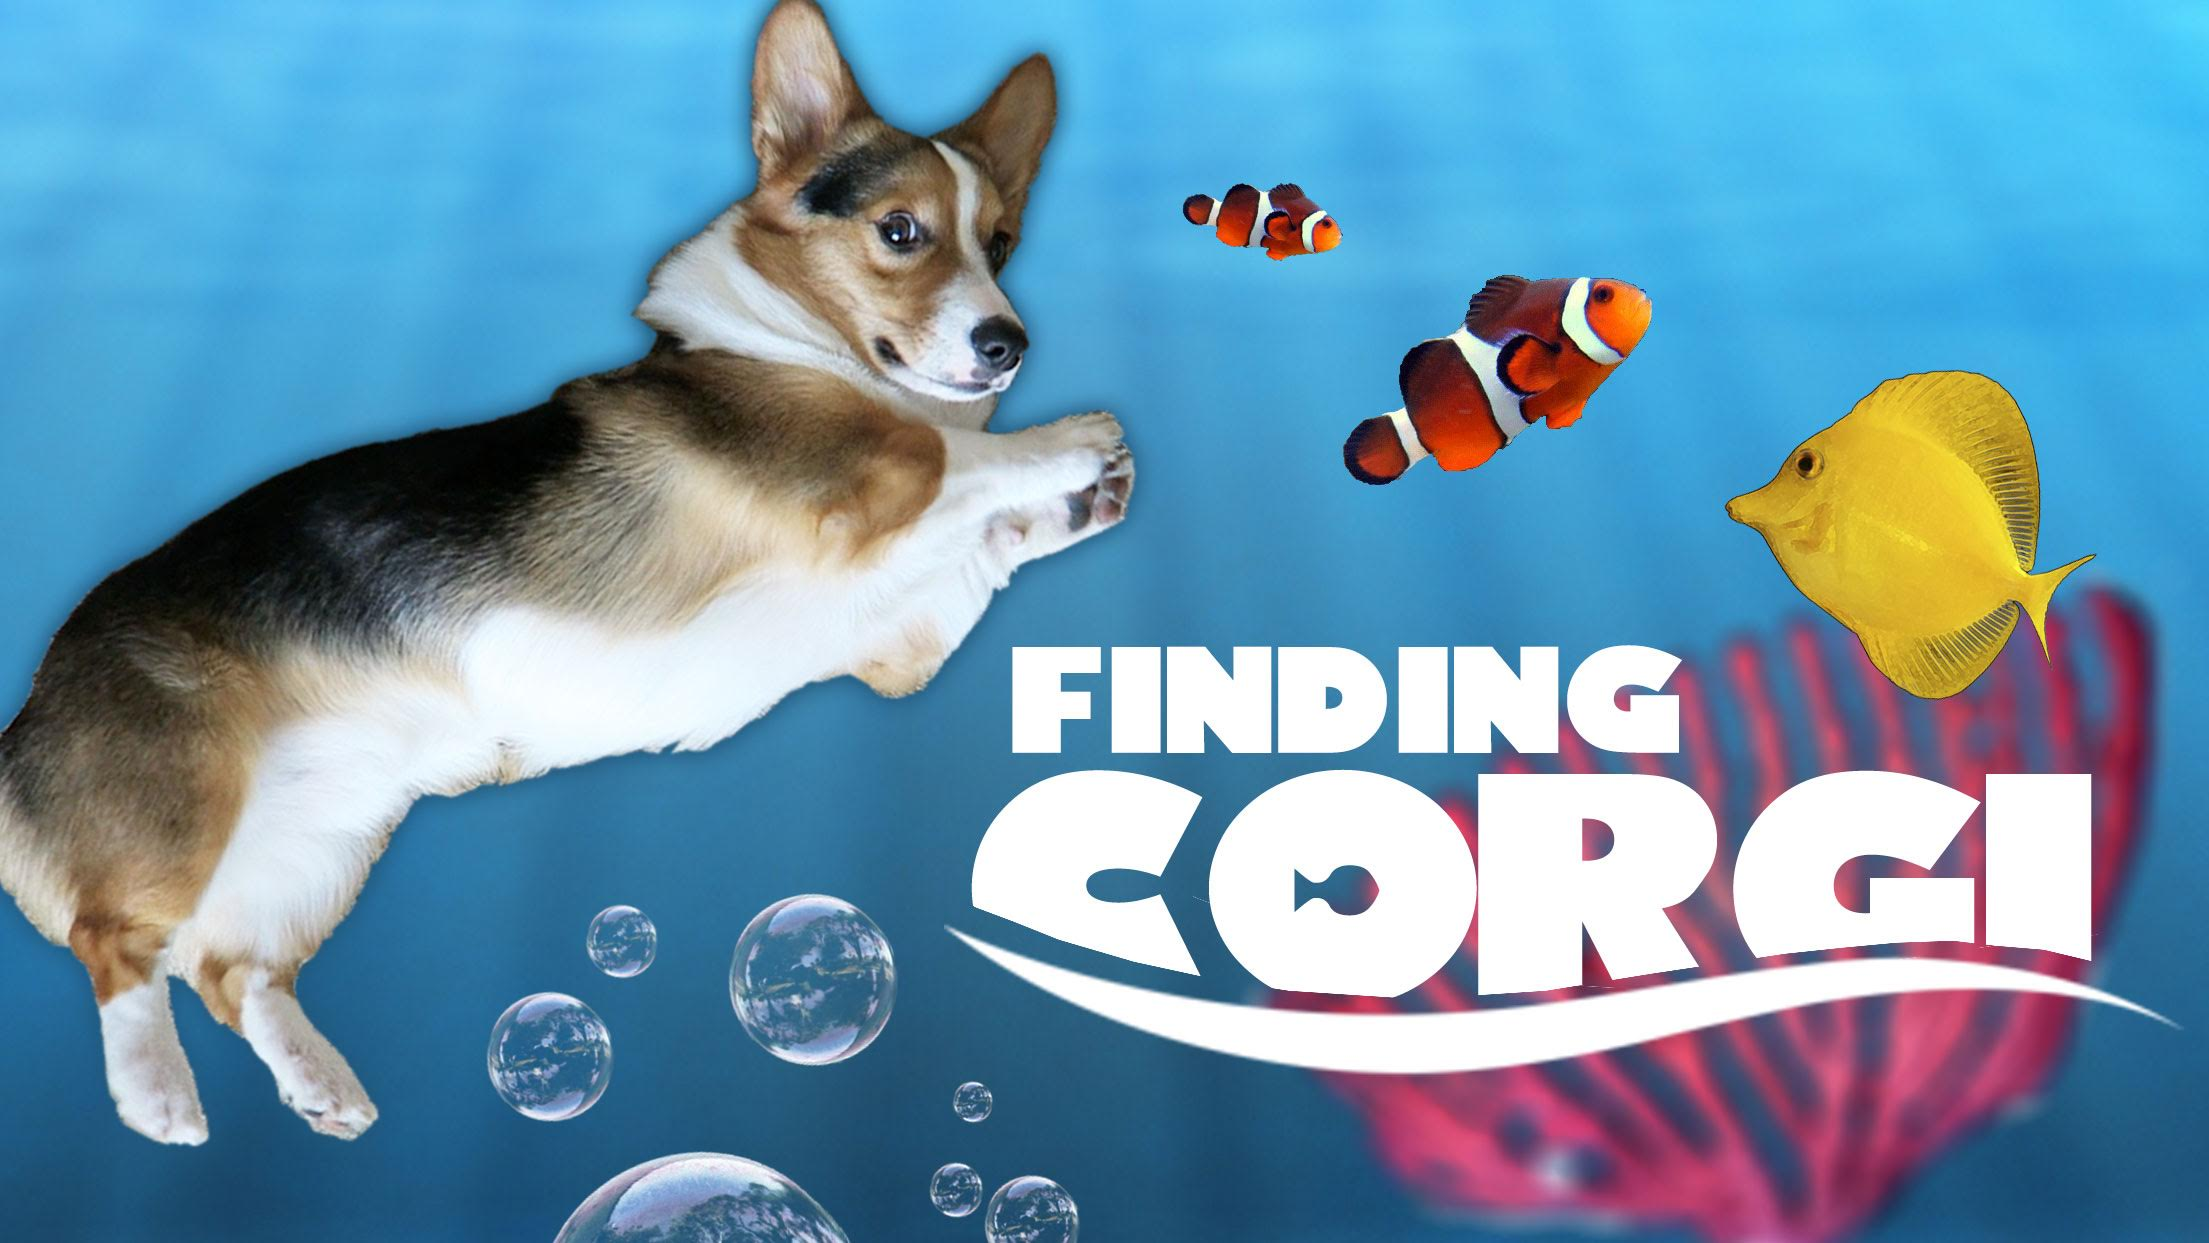 CORGI CARES FOR NEW FISH TANK FRIENDS